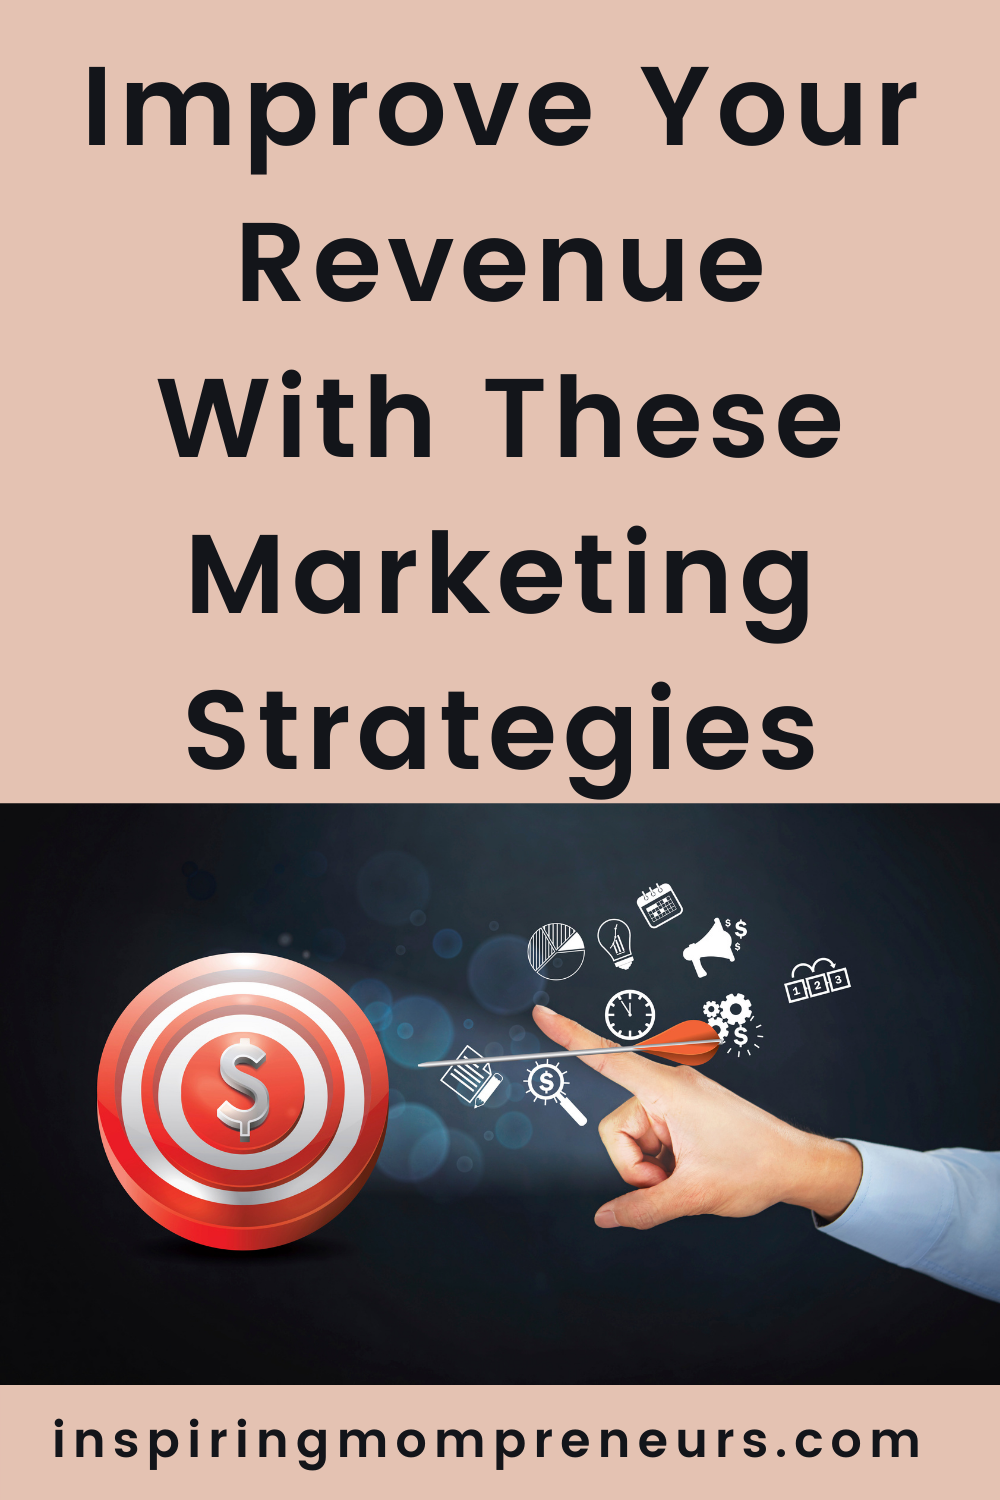 Multiple marketing strategies have been shown to have a direct impact on revenue and business growth. Which marketing strategies work best? Start with these.